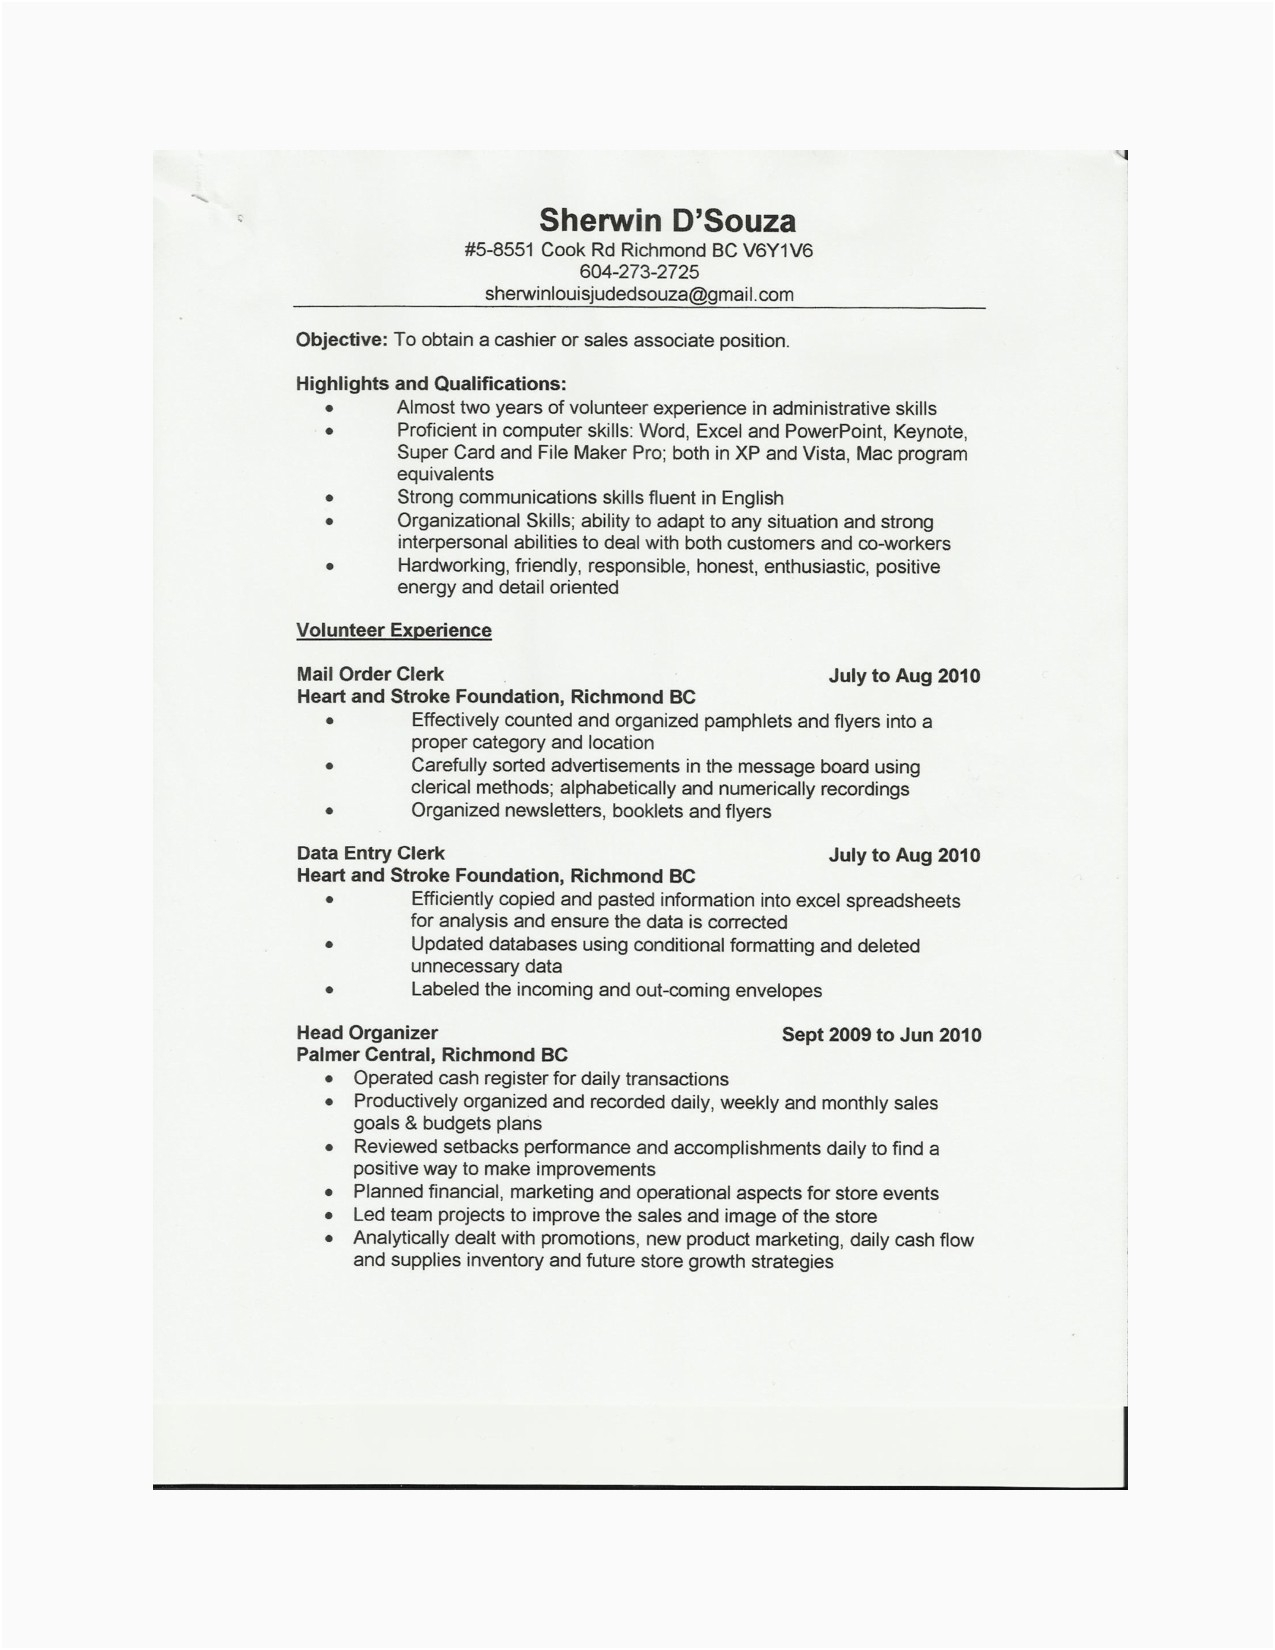 Sales associate Resume Template - Resume Examples for Sales associate Fresh Retail Sales associate